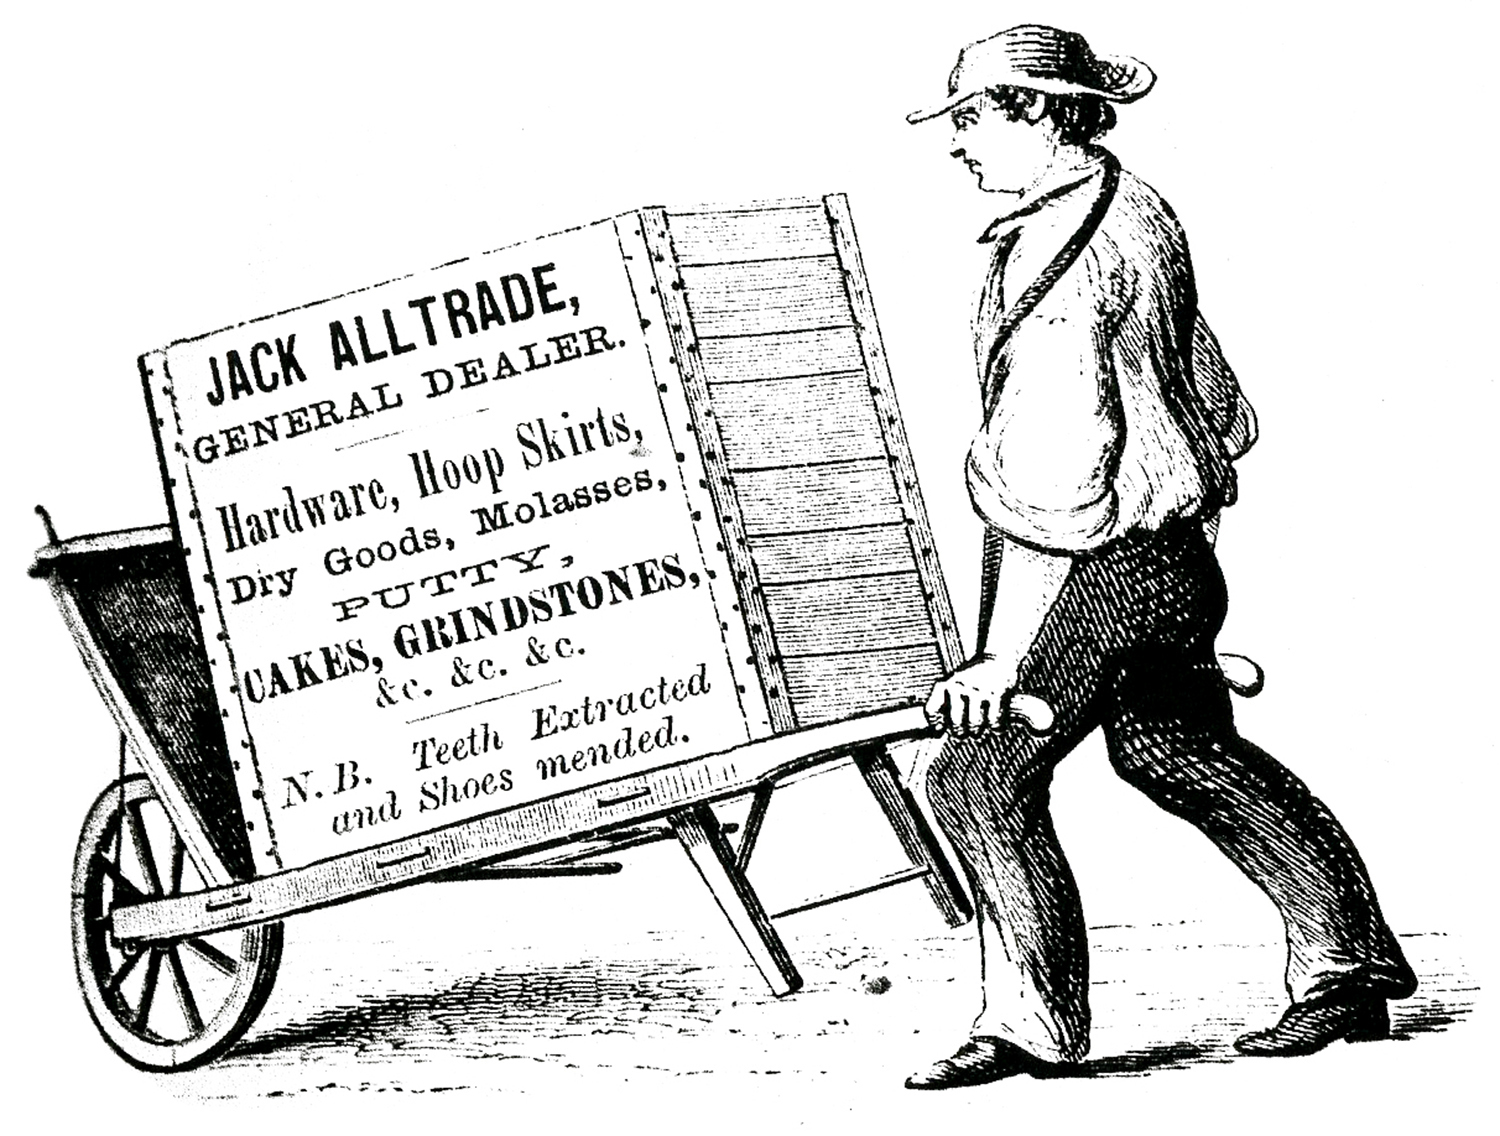 Jack clipart all trade. Curious wheelbarrow sign man